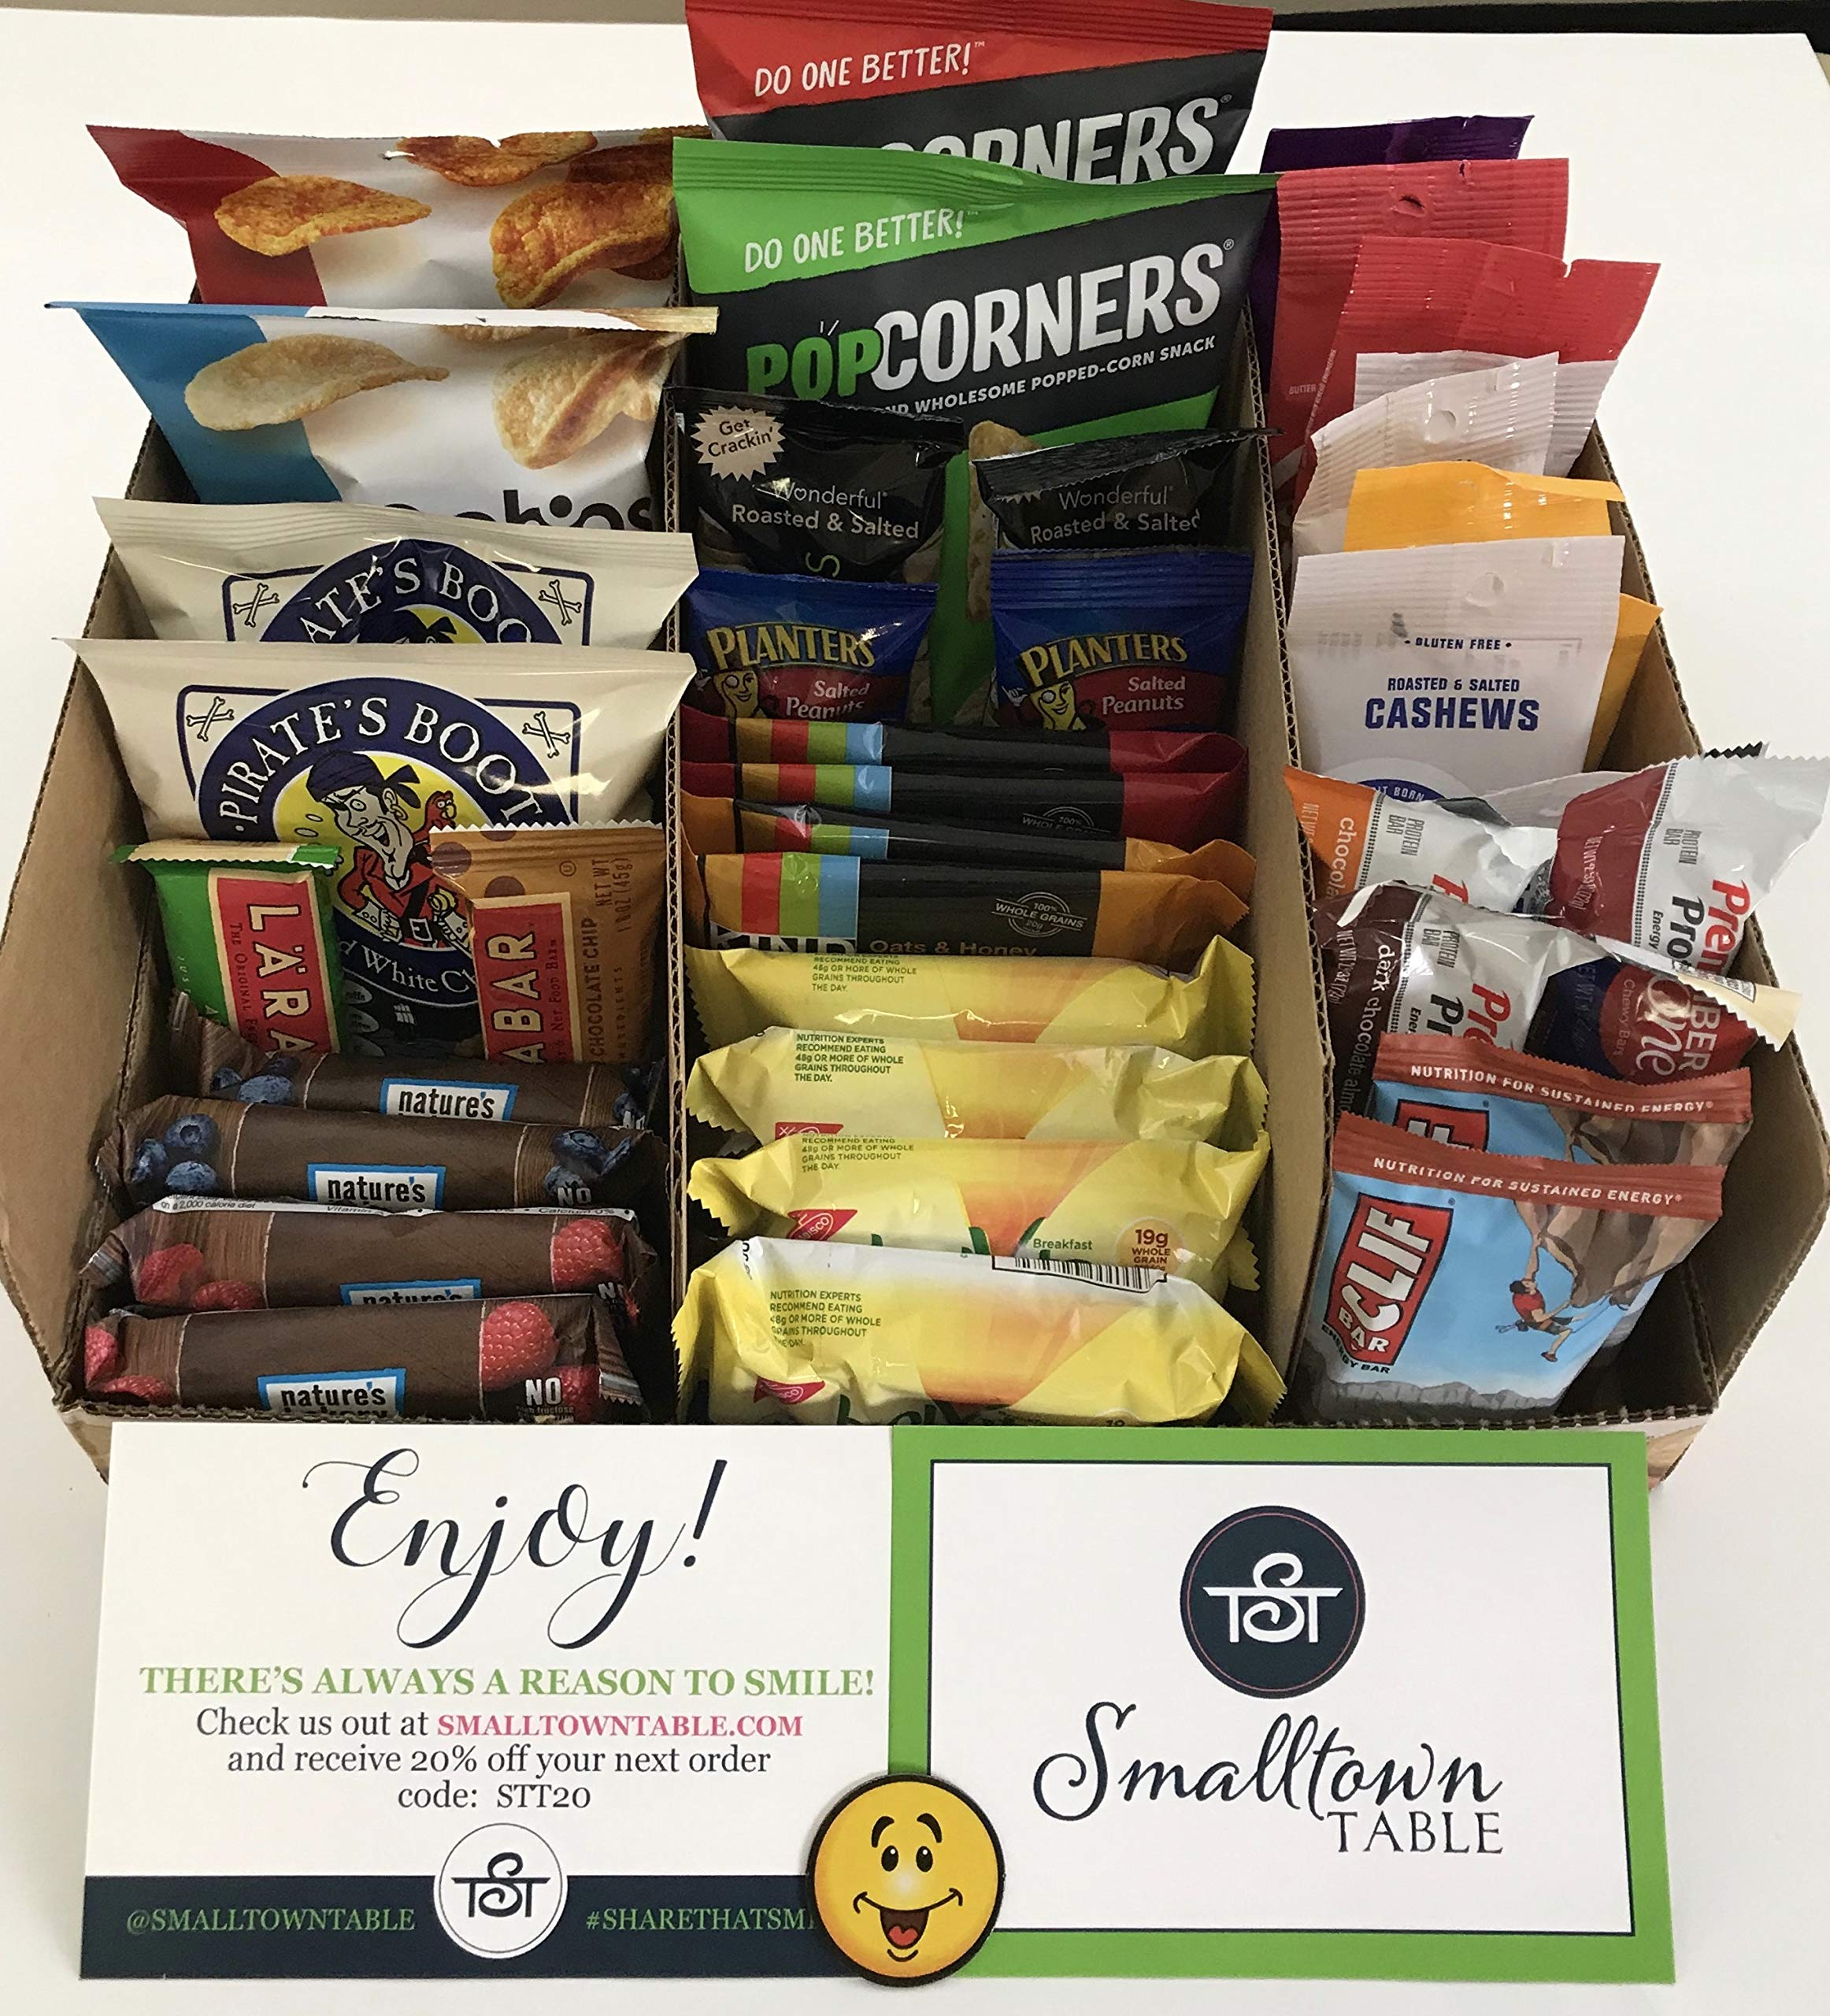 Premium Snacks Variety Pack Care Package - Huge 100 Count - the Perfect Gift Box for Office, College Students, Camp, Military - Individually Wrapped Chips, Cookies, Candy, More by SmallTown Table (Image #6)